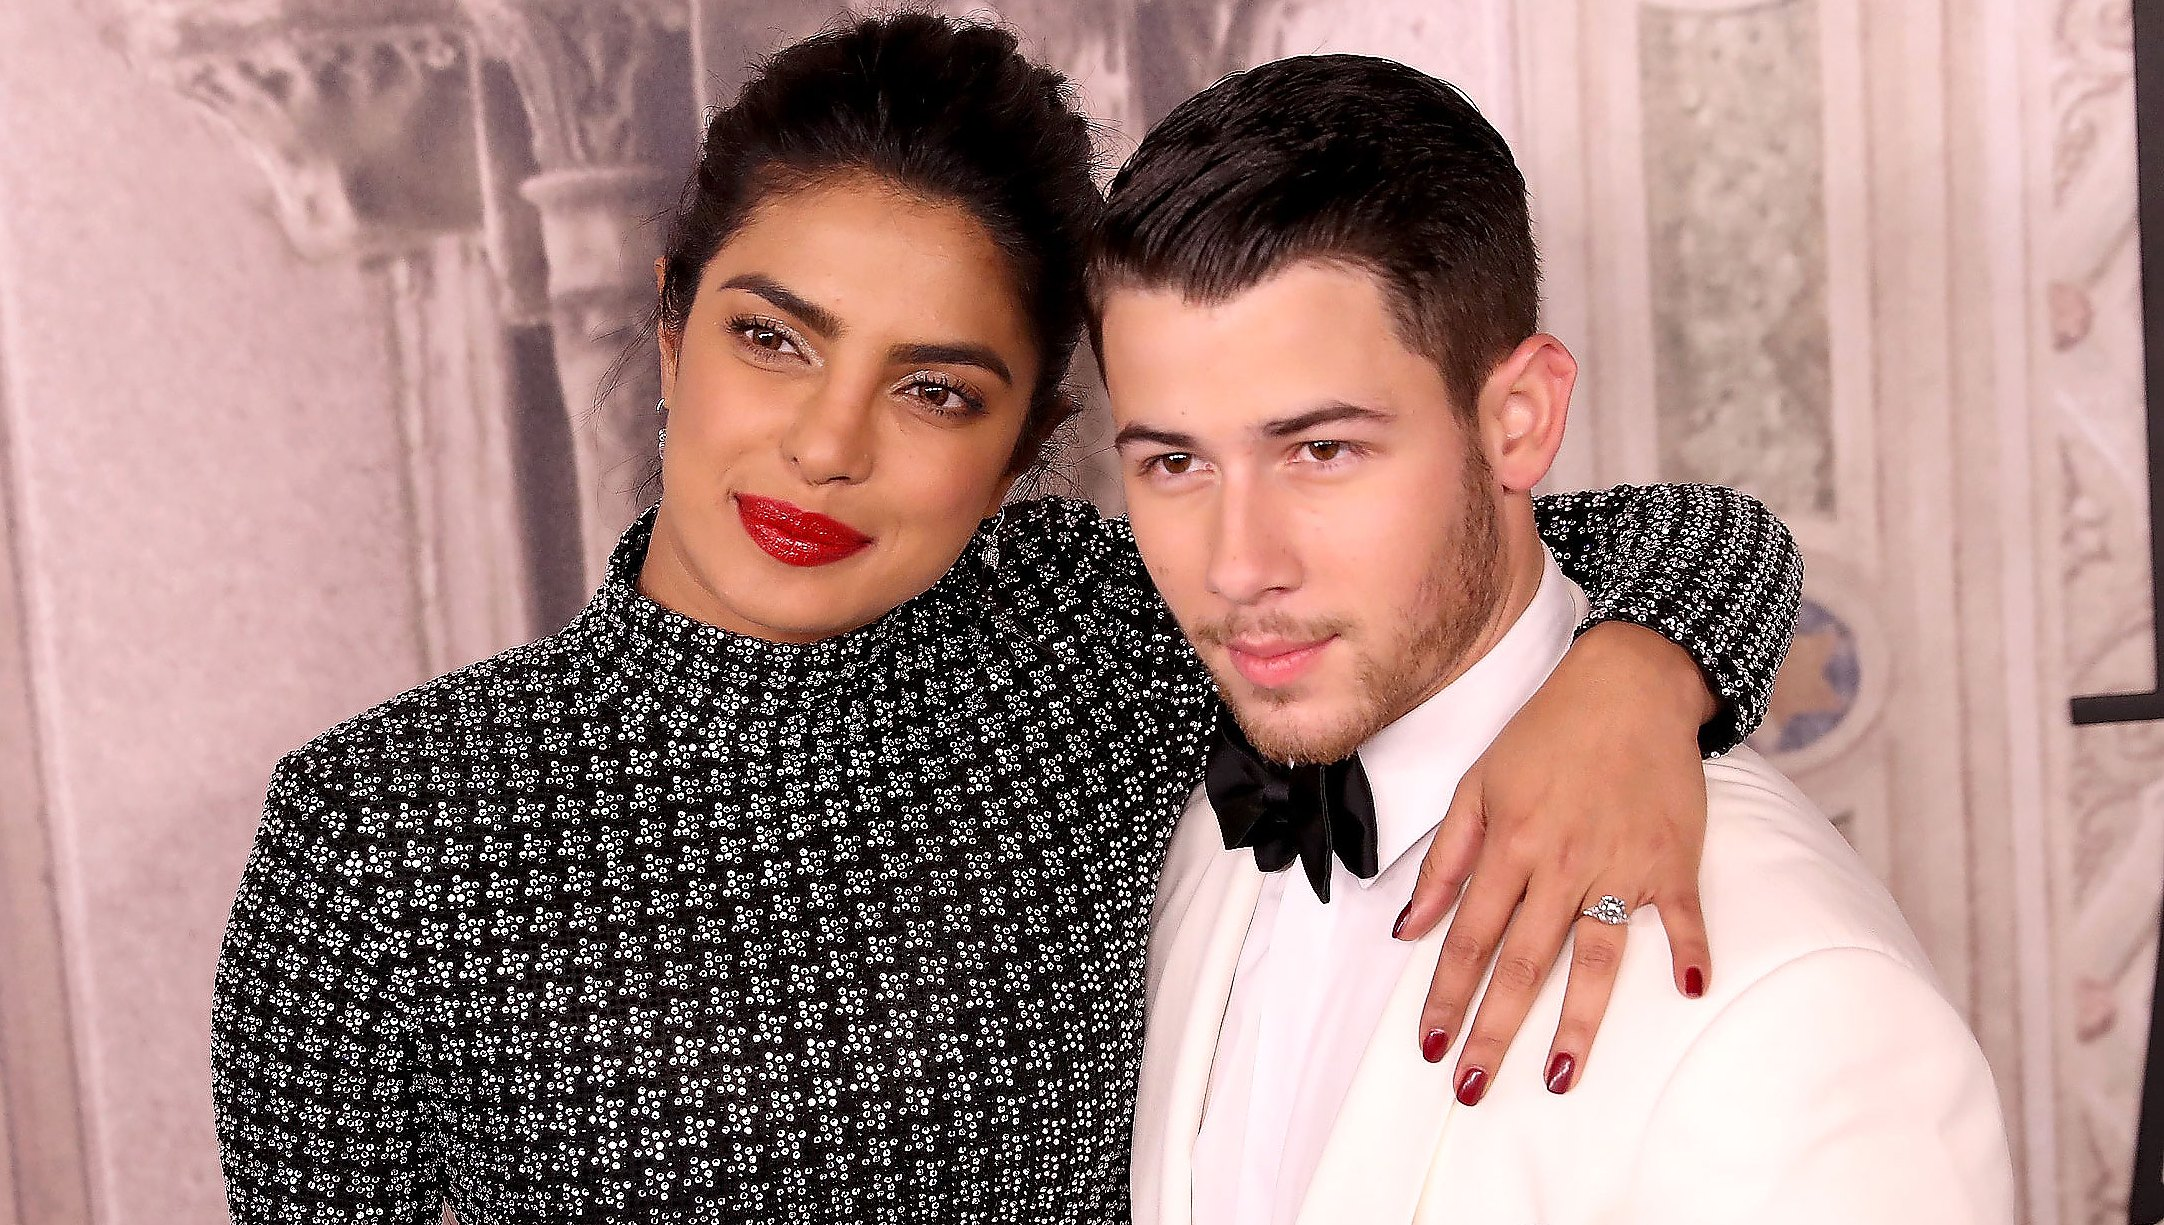 Nick Jonas and Priyanka Chopra Enjoy 'Mumbai Nights' With Joe Jonas and Sophie Turner Ahead of Wedding